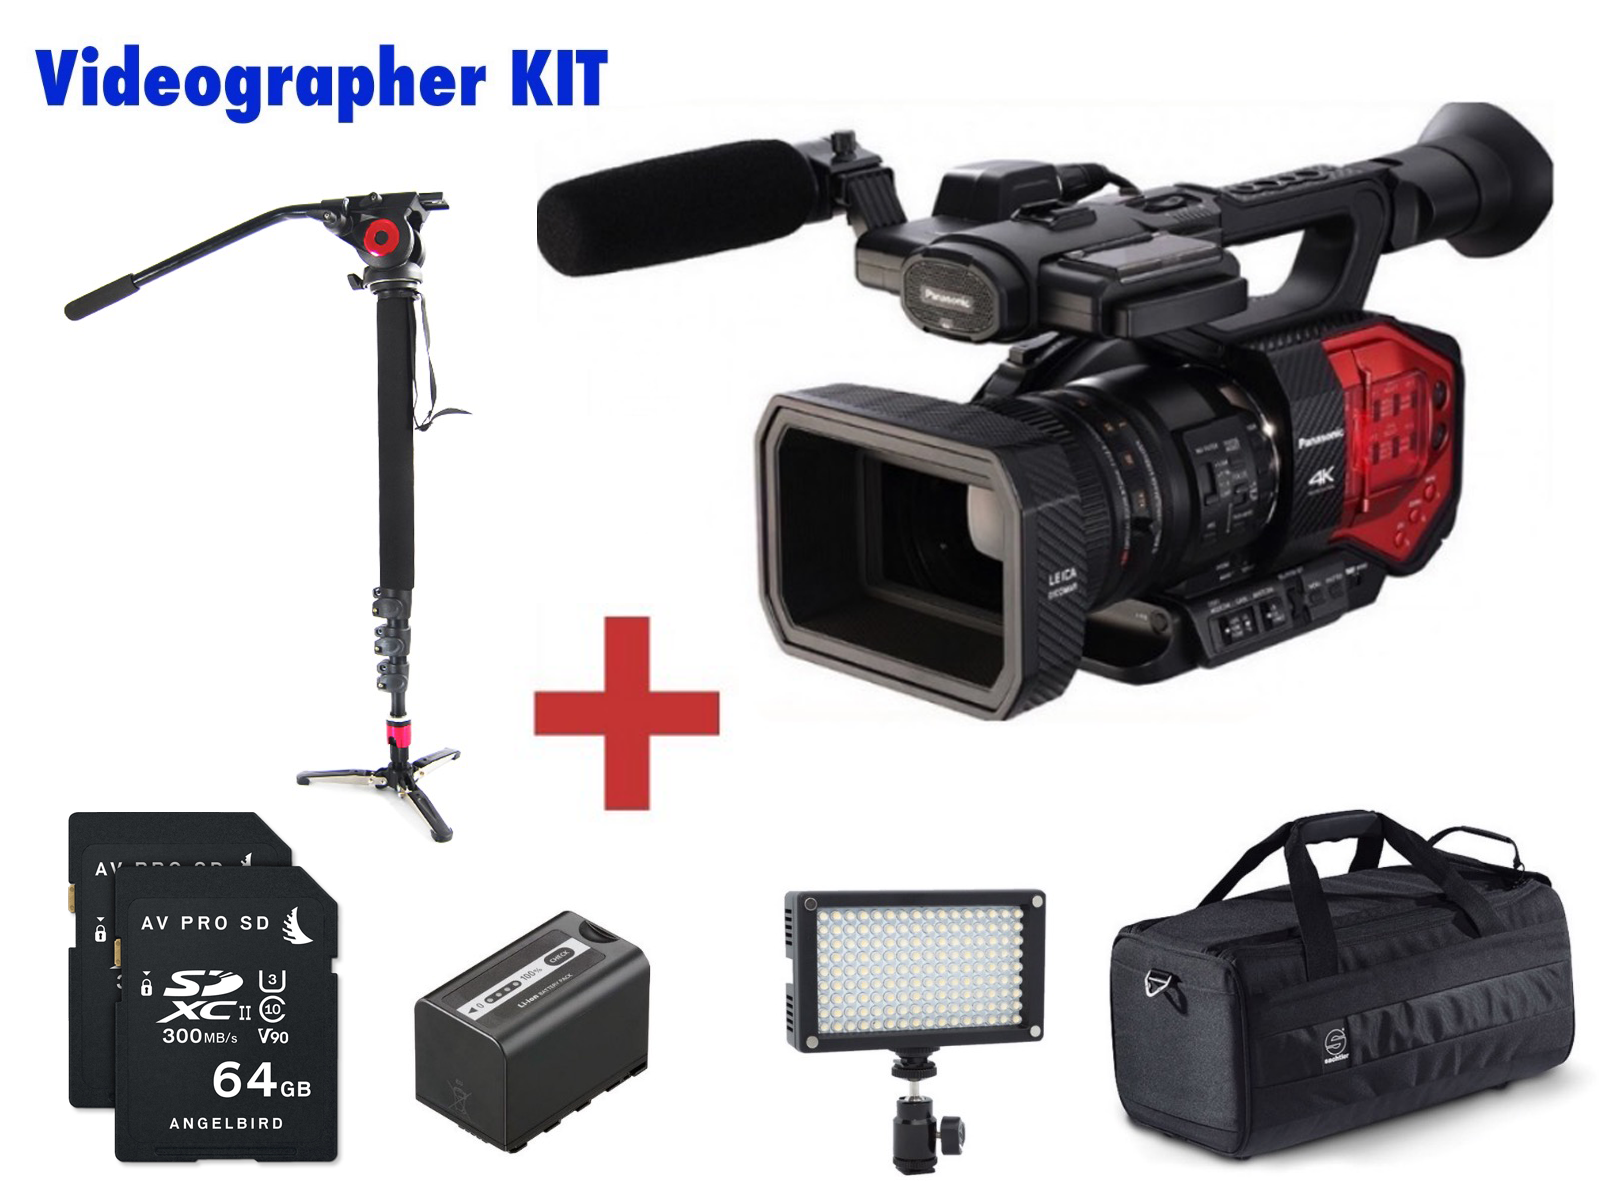 PANASONIC  AG-DVX200 (DVX200) VIDEOGRAPHER KIT